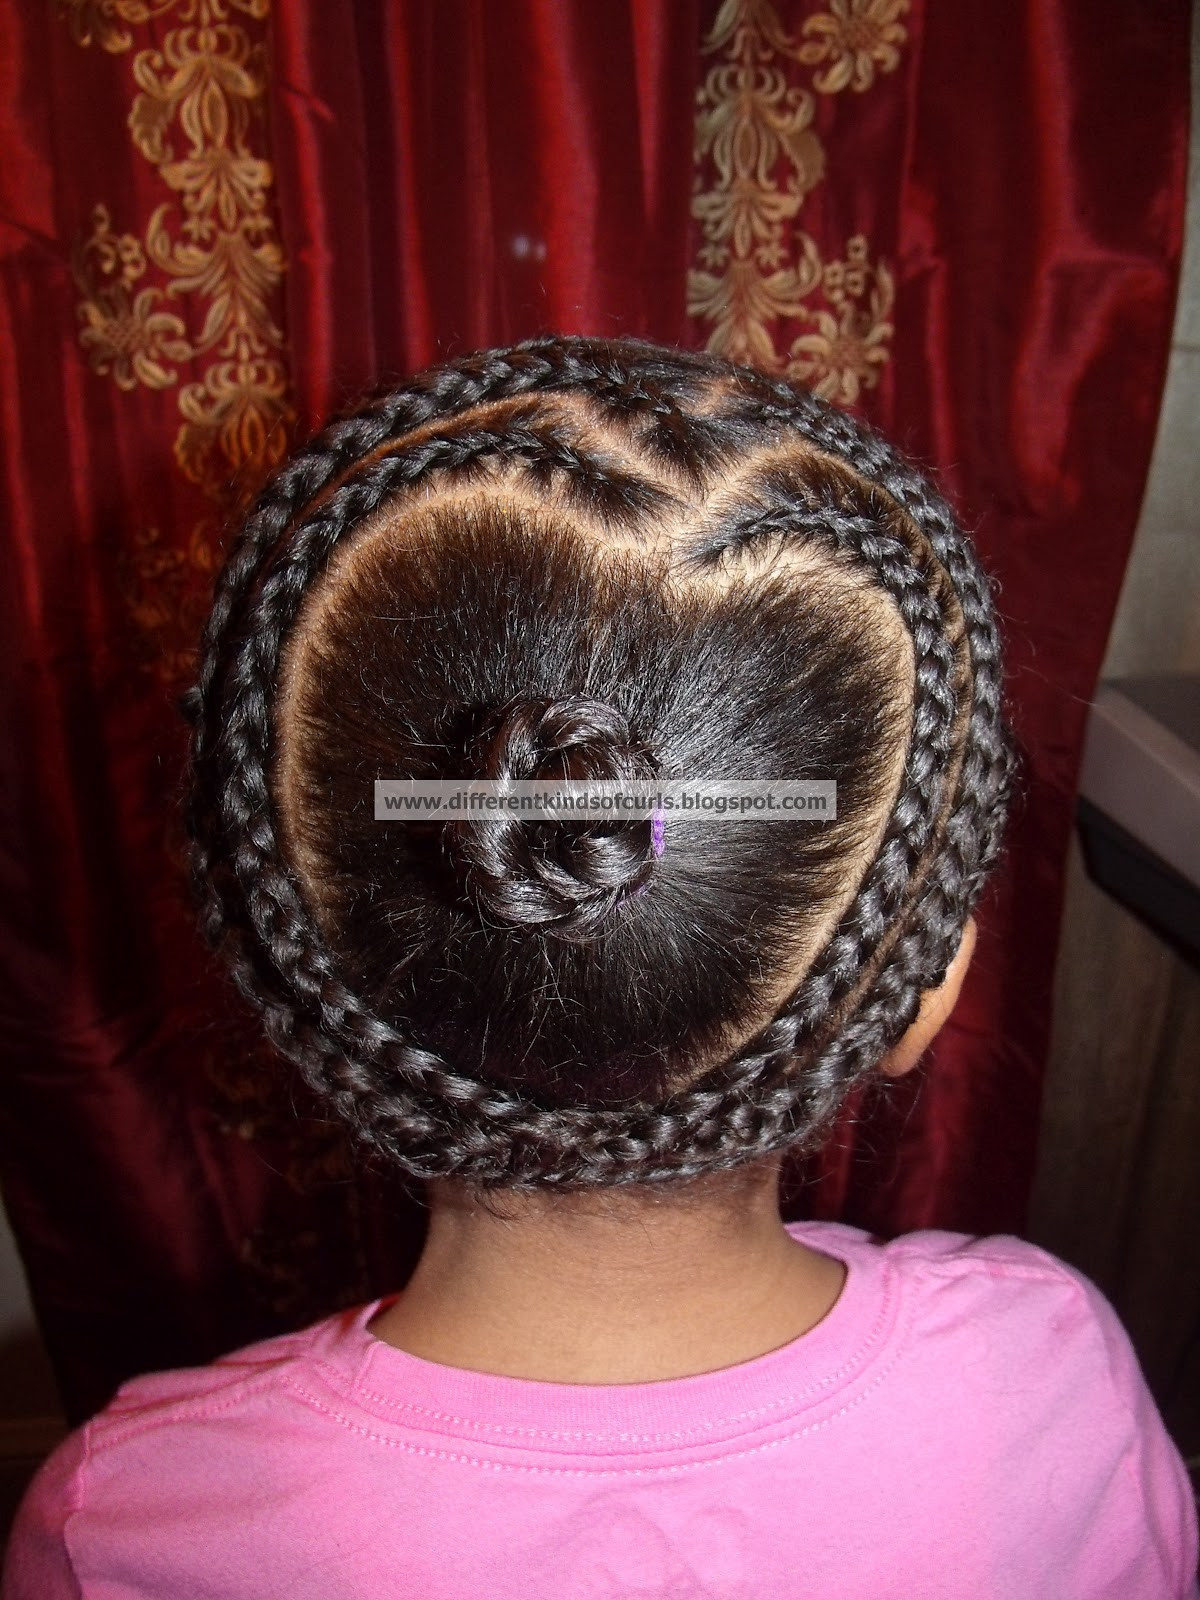 Protective Hairstyles For Kids  Different Kinds of Curls Cute protective Valentine s Day